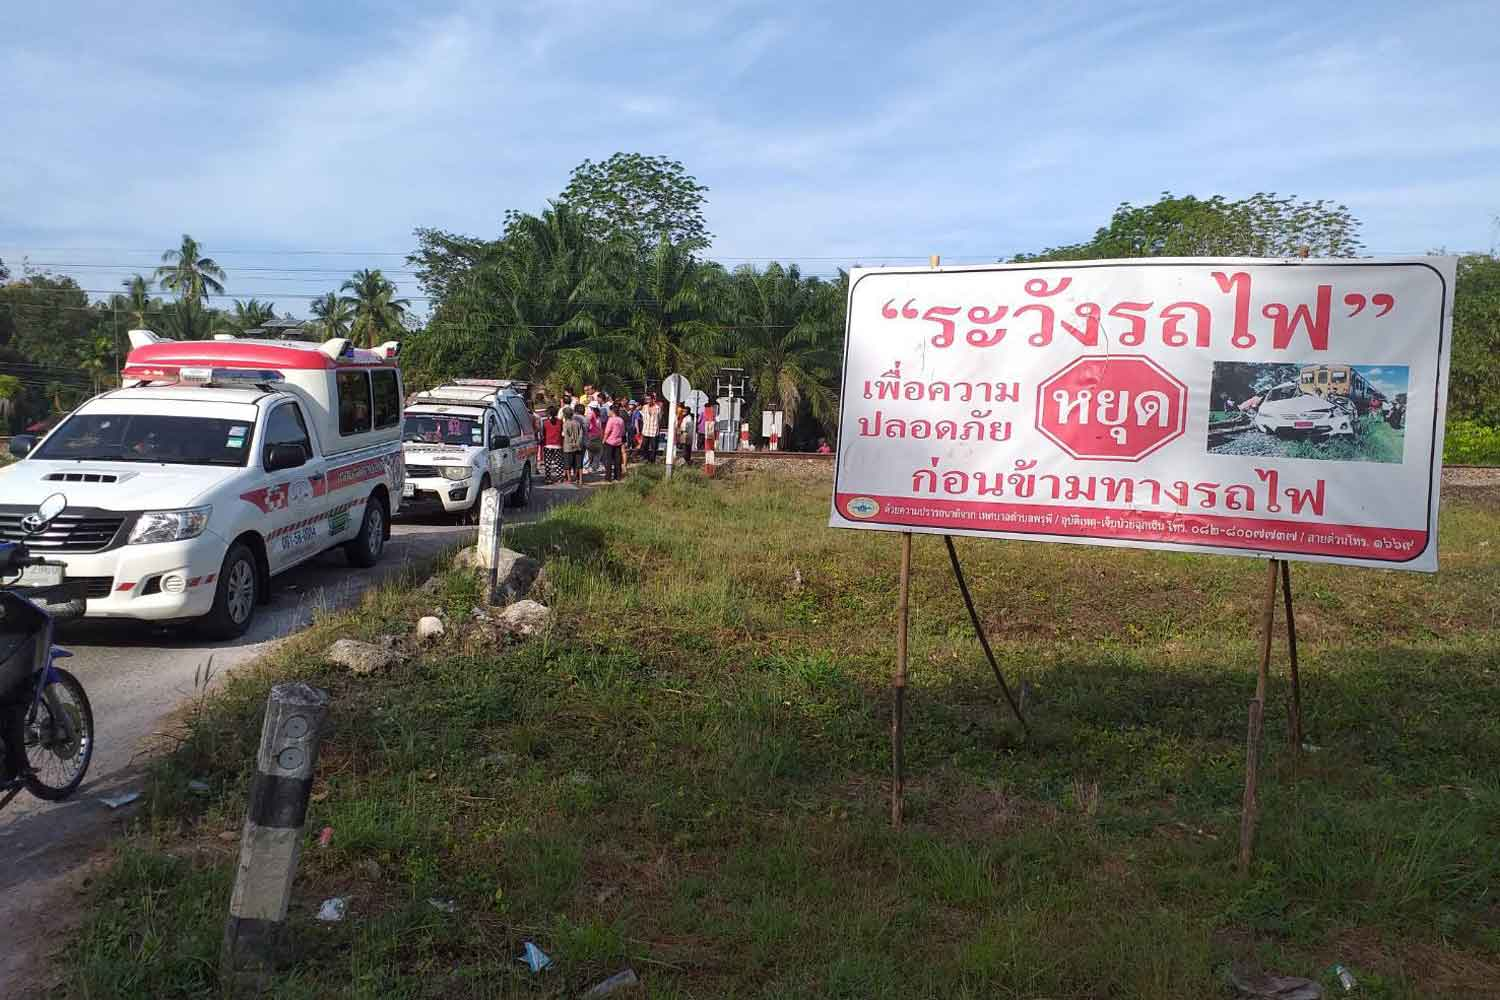 Onlookers gather at the railway crossing where an express train hit and killed a deaf man on Tuesday morning at Ban Nong Yai in tambon Phru Phi of Ban Nasan district, Surat Thani. (Photo by Supapong Chaolan)